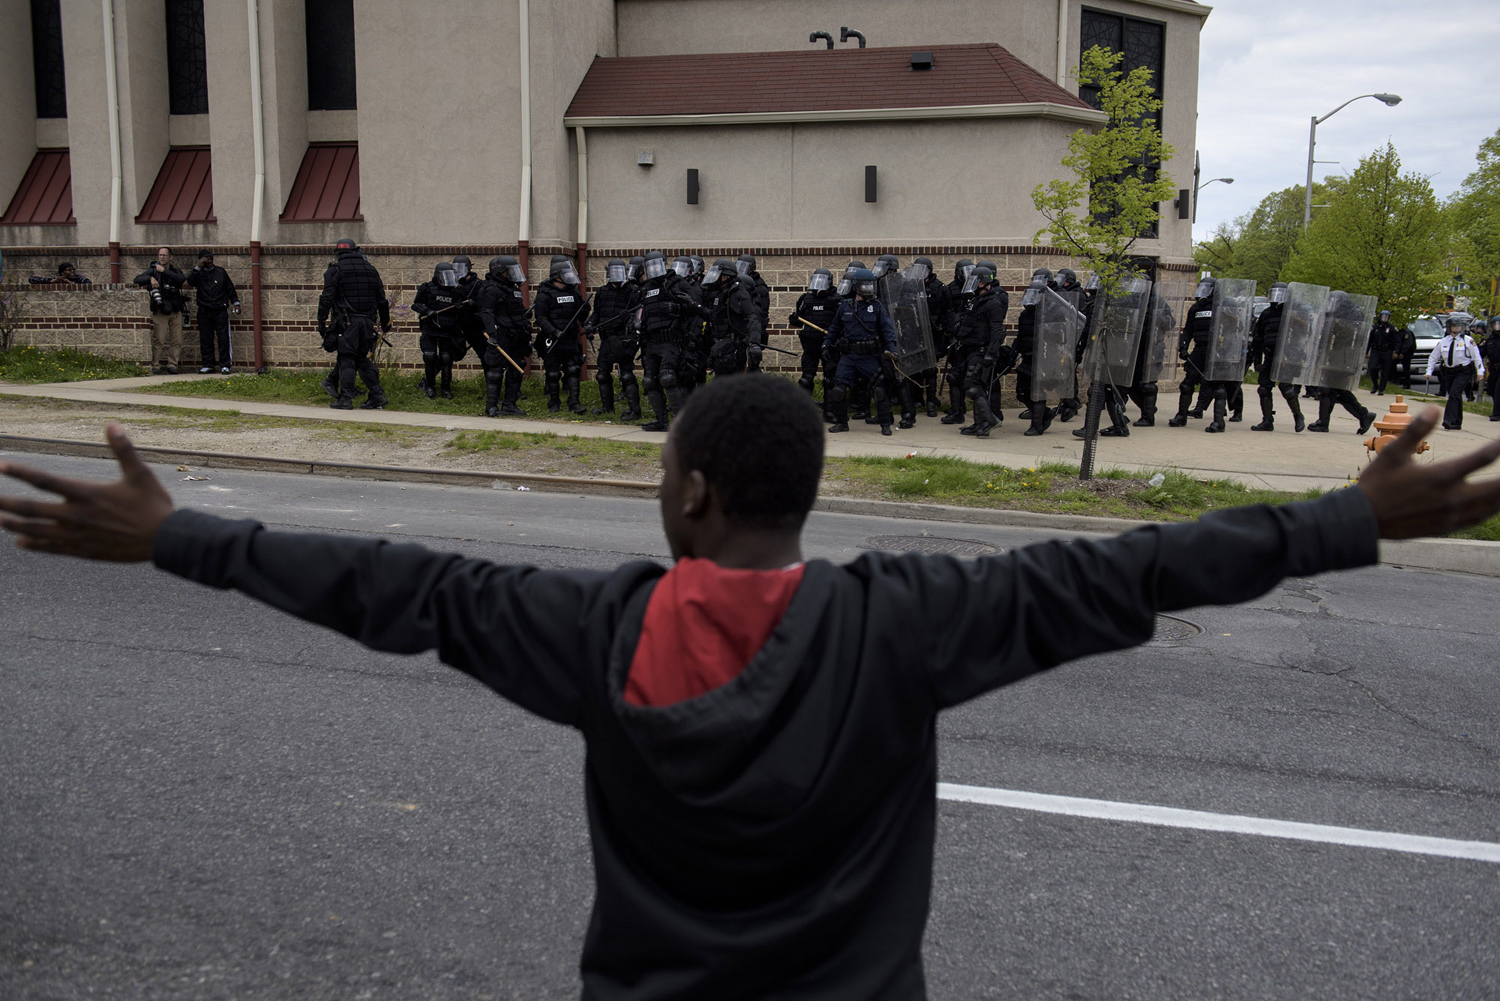 Baltimore police officers in riot gear push protestors back along - Baltimore Police Officers In Riot Gear Push Protestors Back Along 45